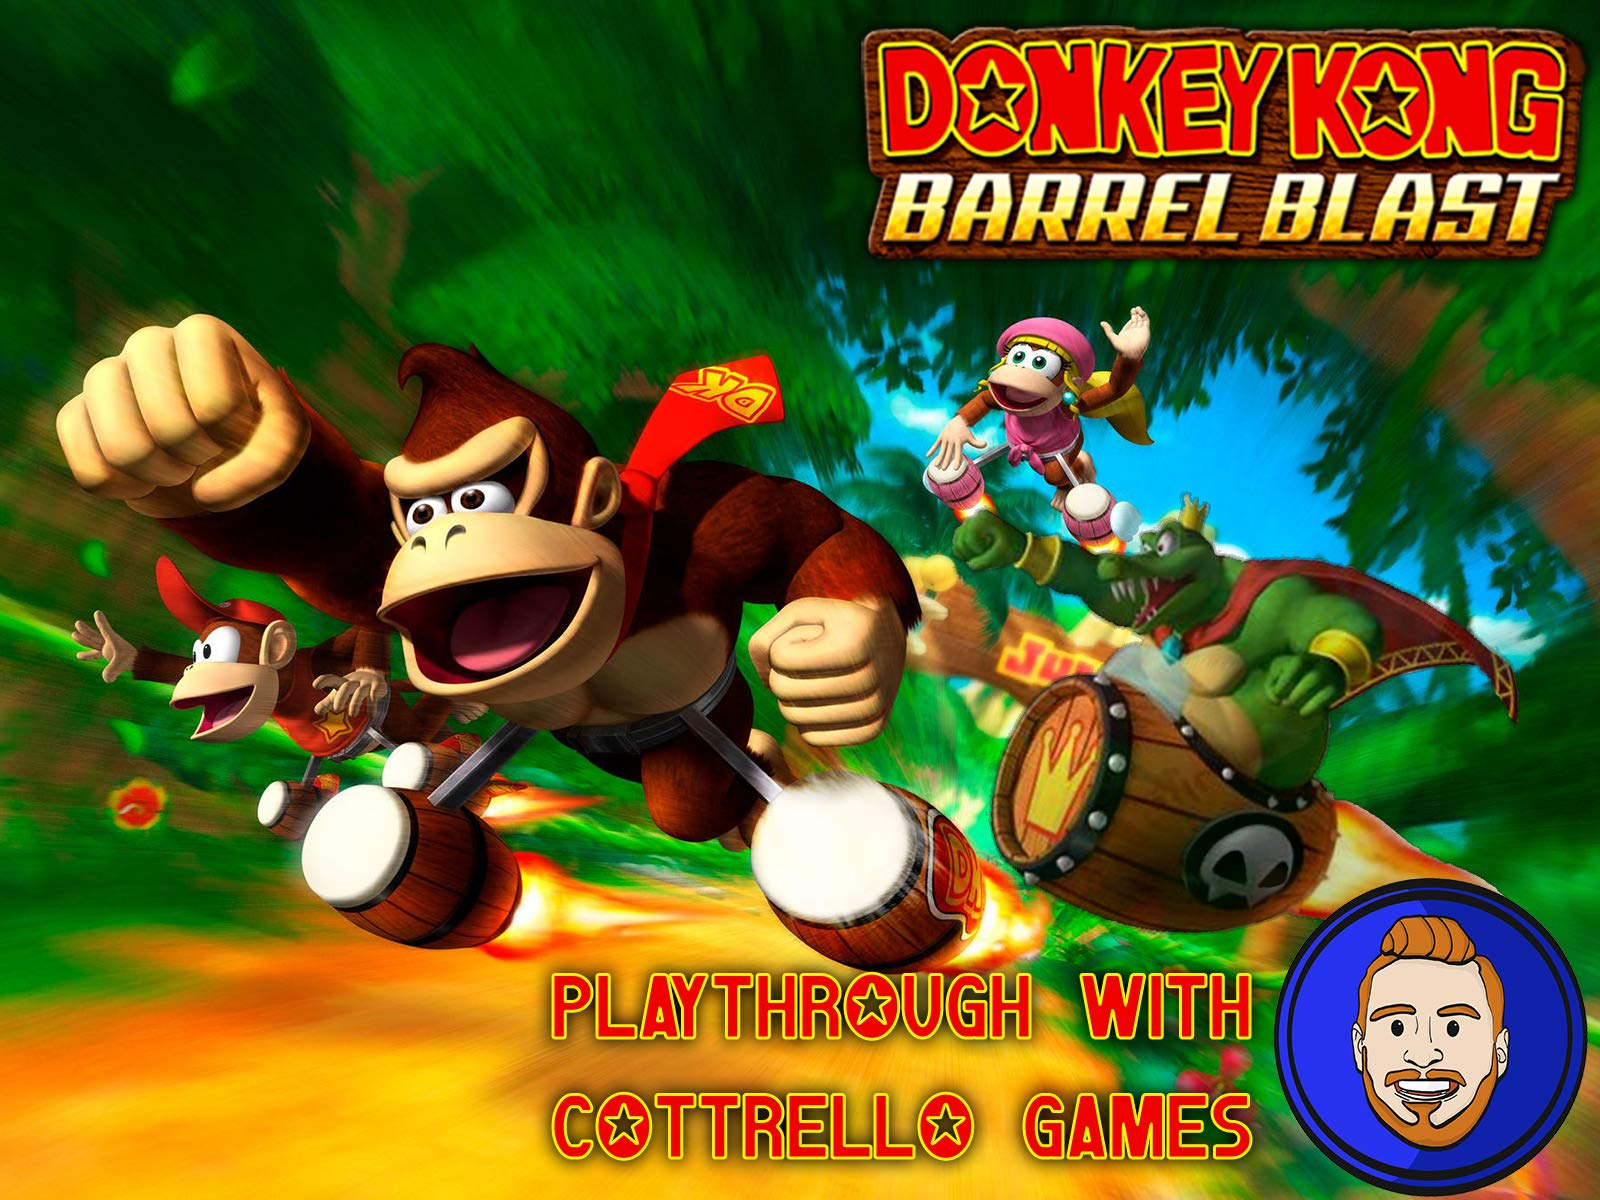 Donkey Kong Barrel Blast Playthrough with Cottrello Games